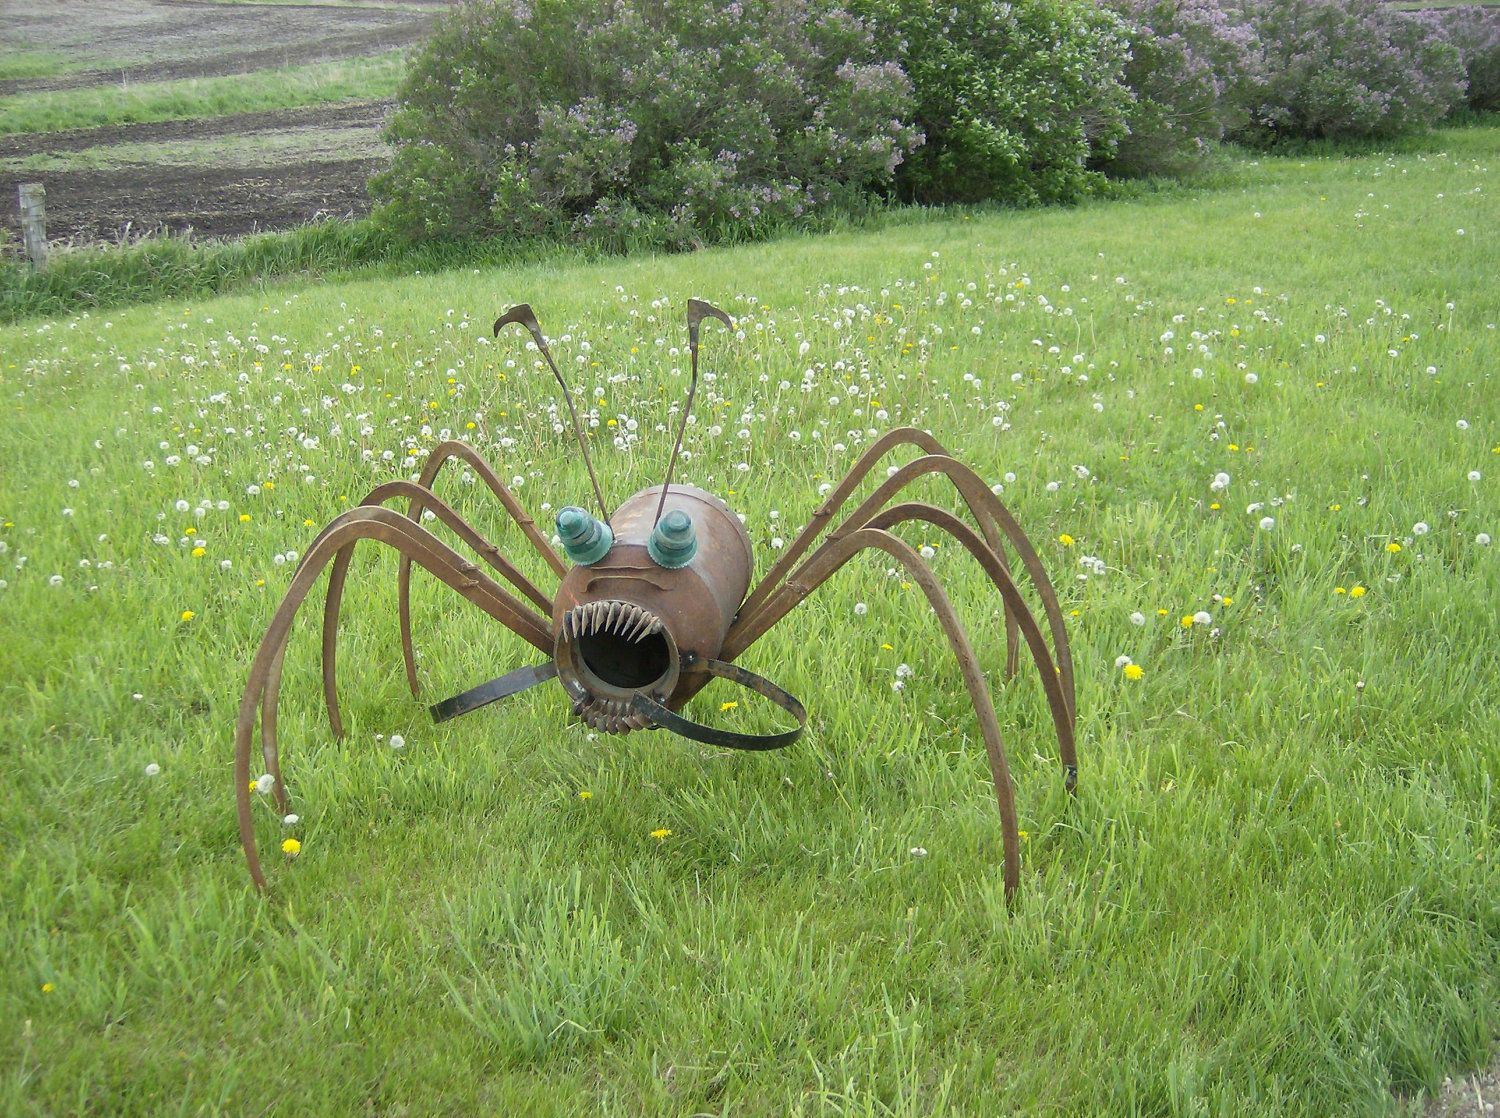 Spider yard art upcycled farm art via etsy for Wire yard art